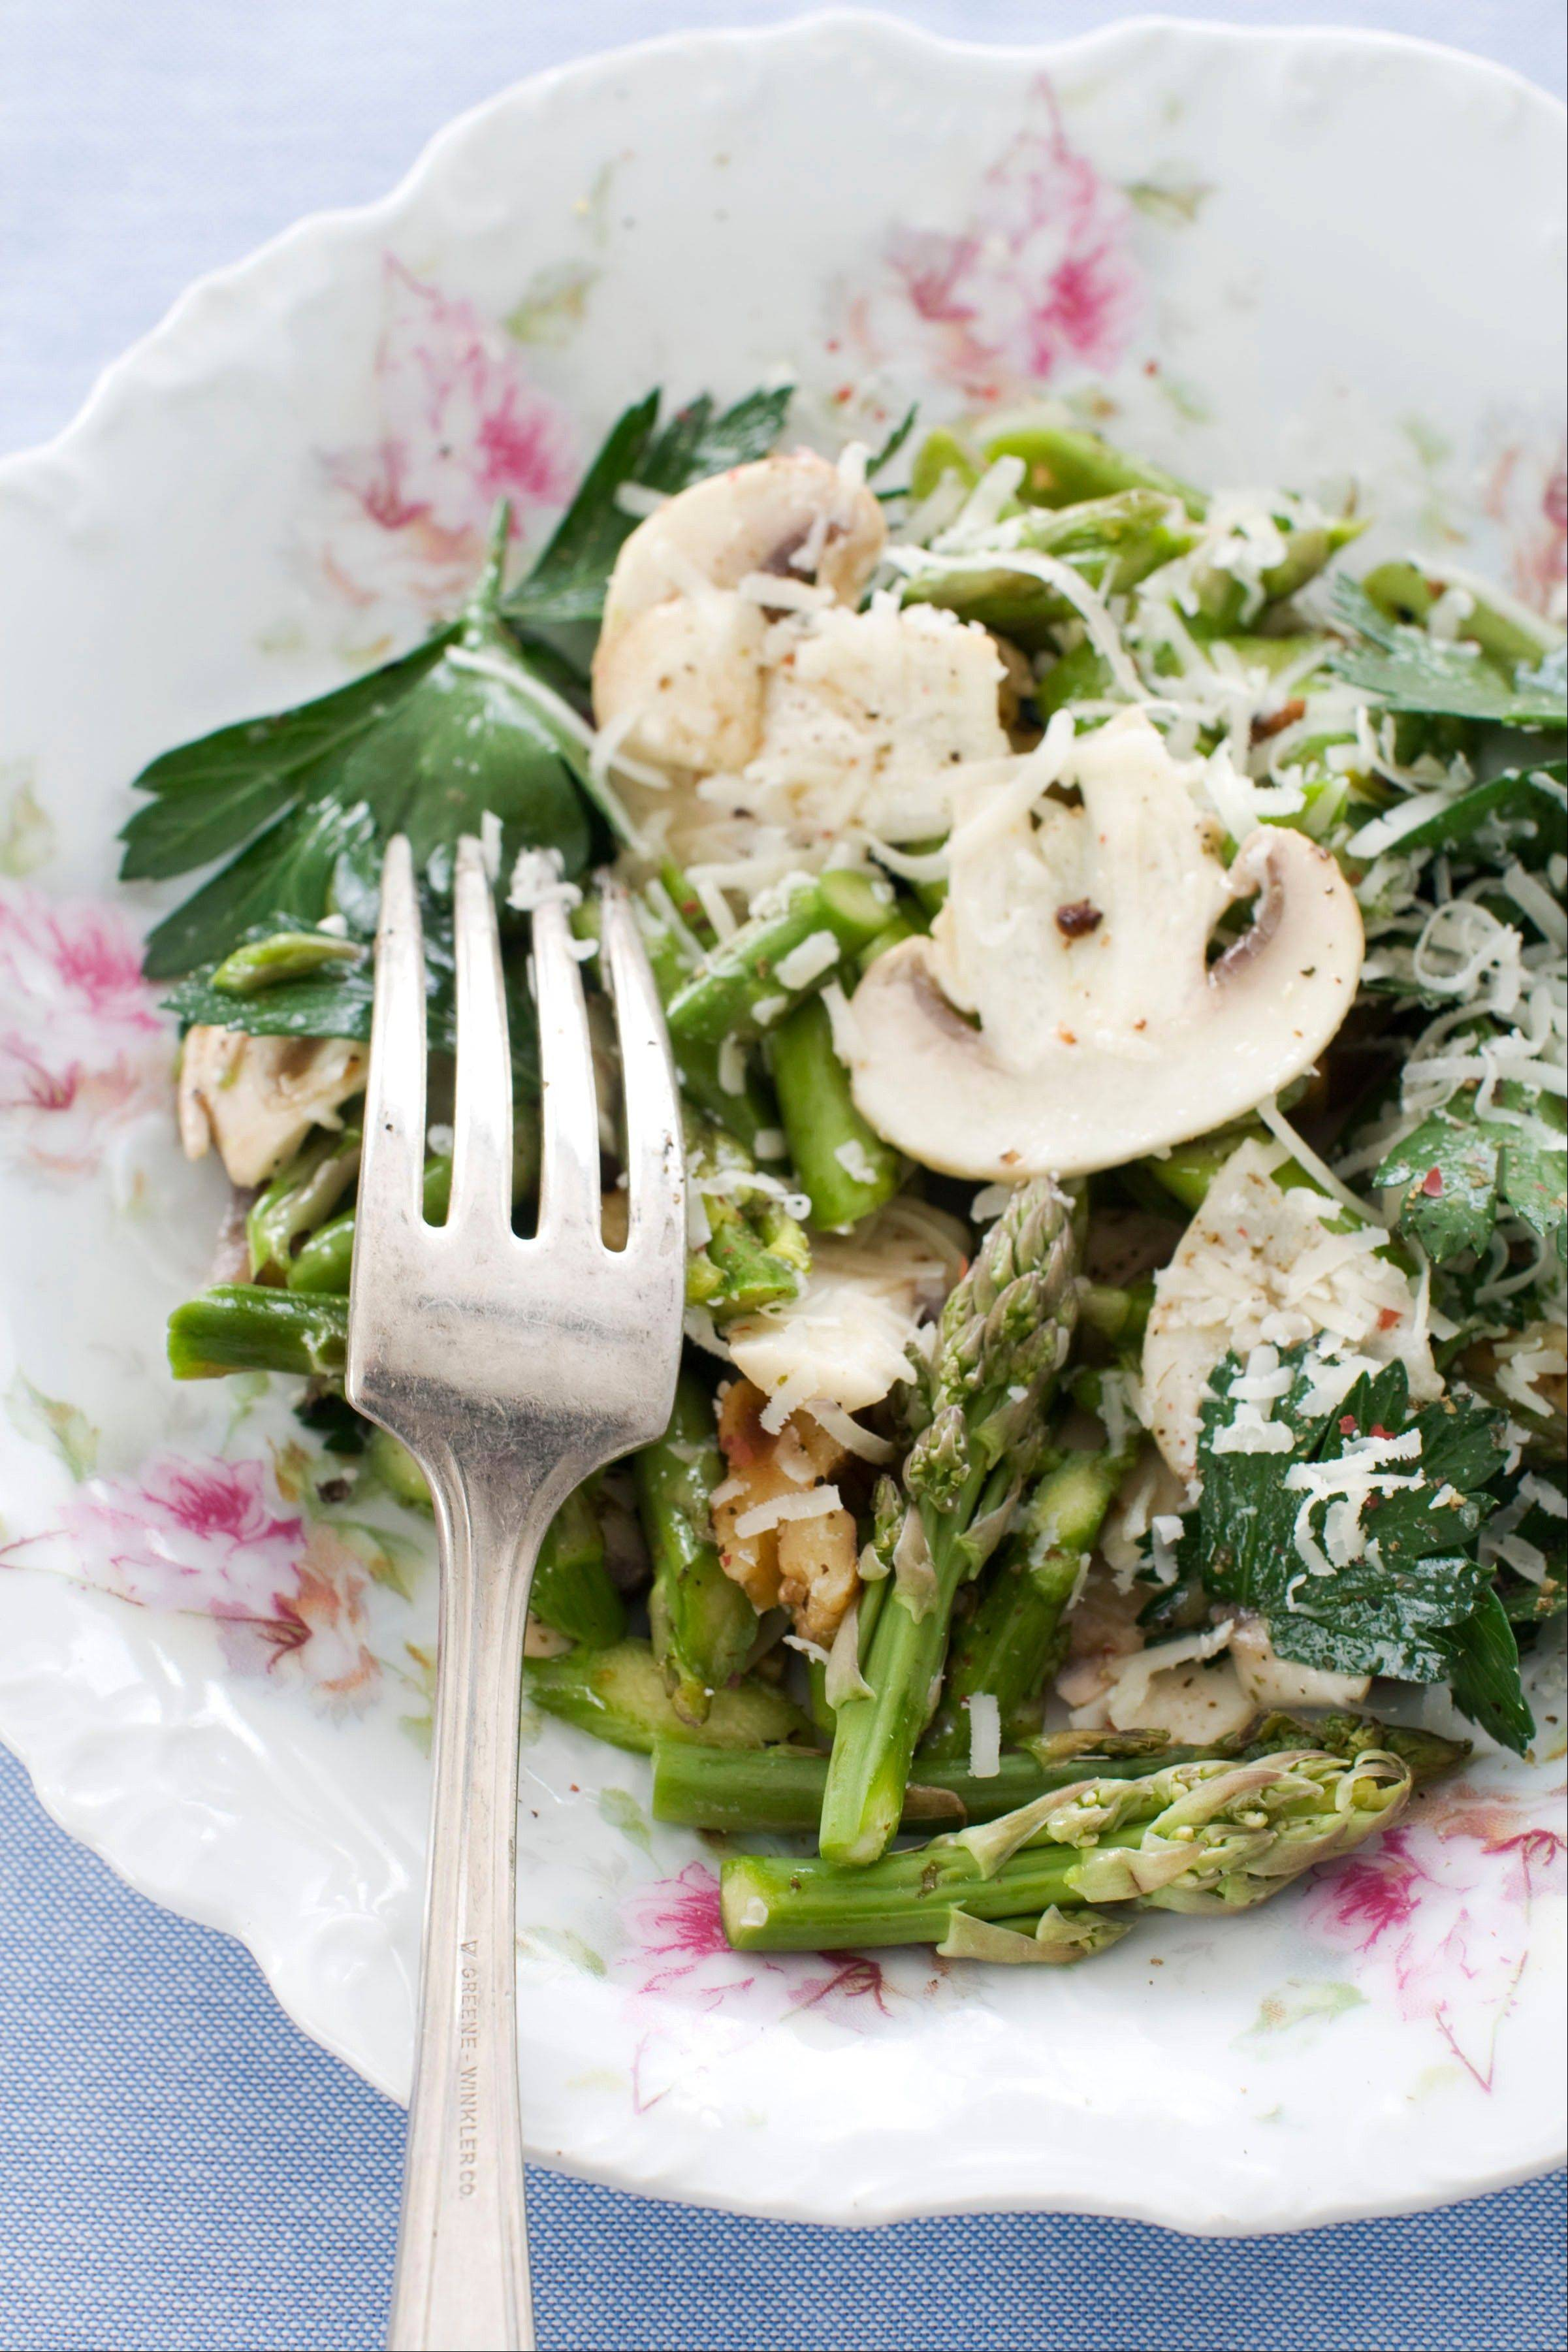 Raw asparagus shines in this salad with mushrooms, parsley and nuts.